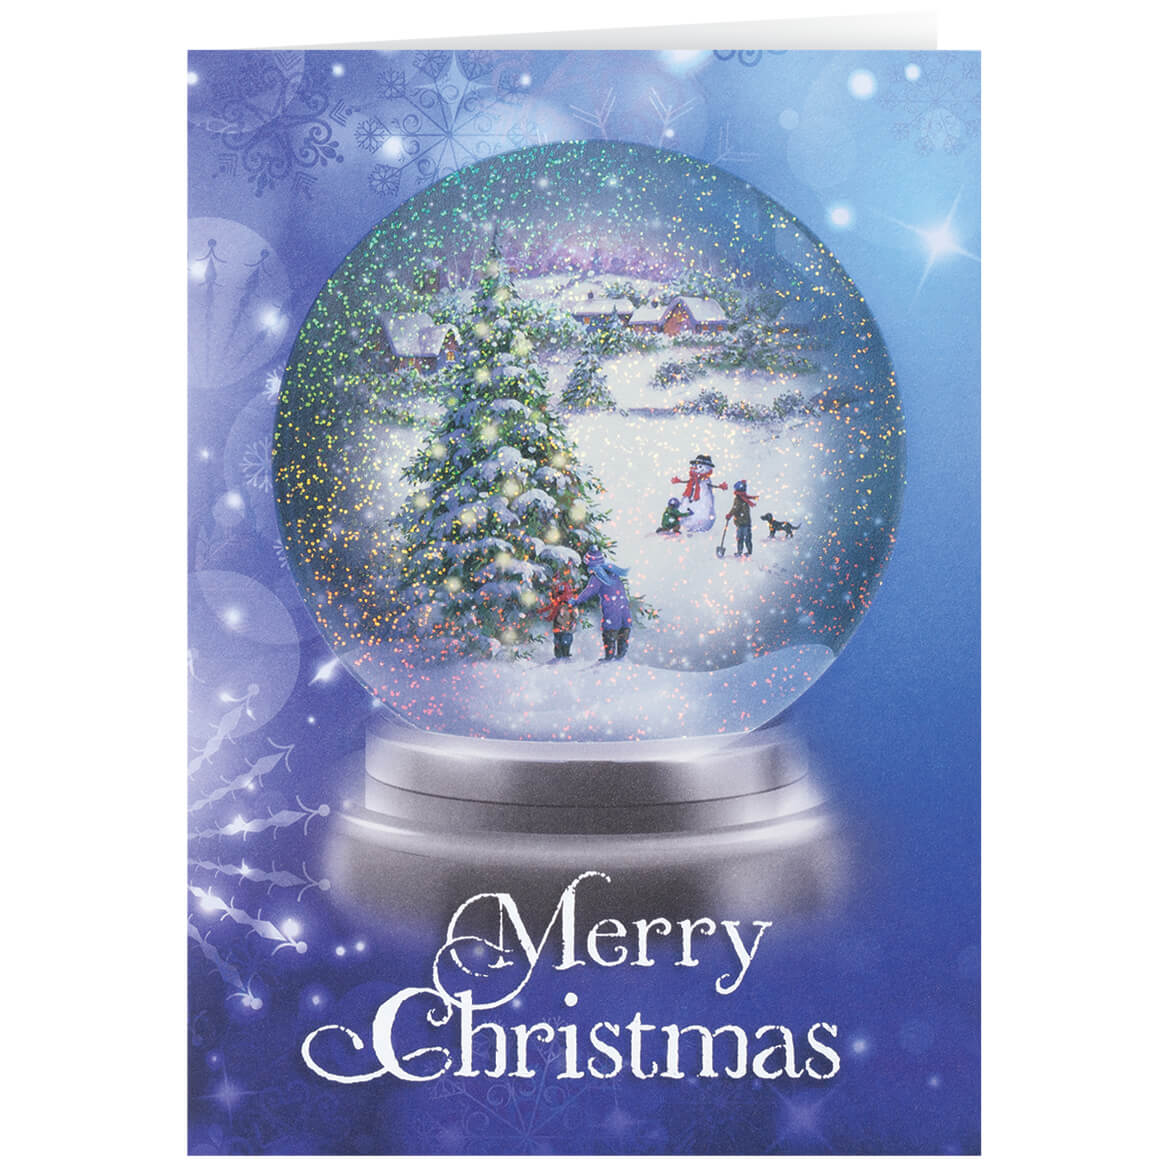 Personalized winter snowglobe christmas card set of 20 walter drake personalized winter snowglobe christmas cards set of 20 m4hsunfo